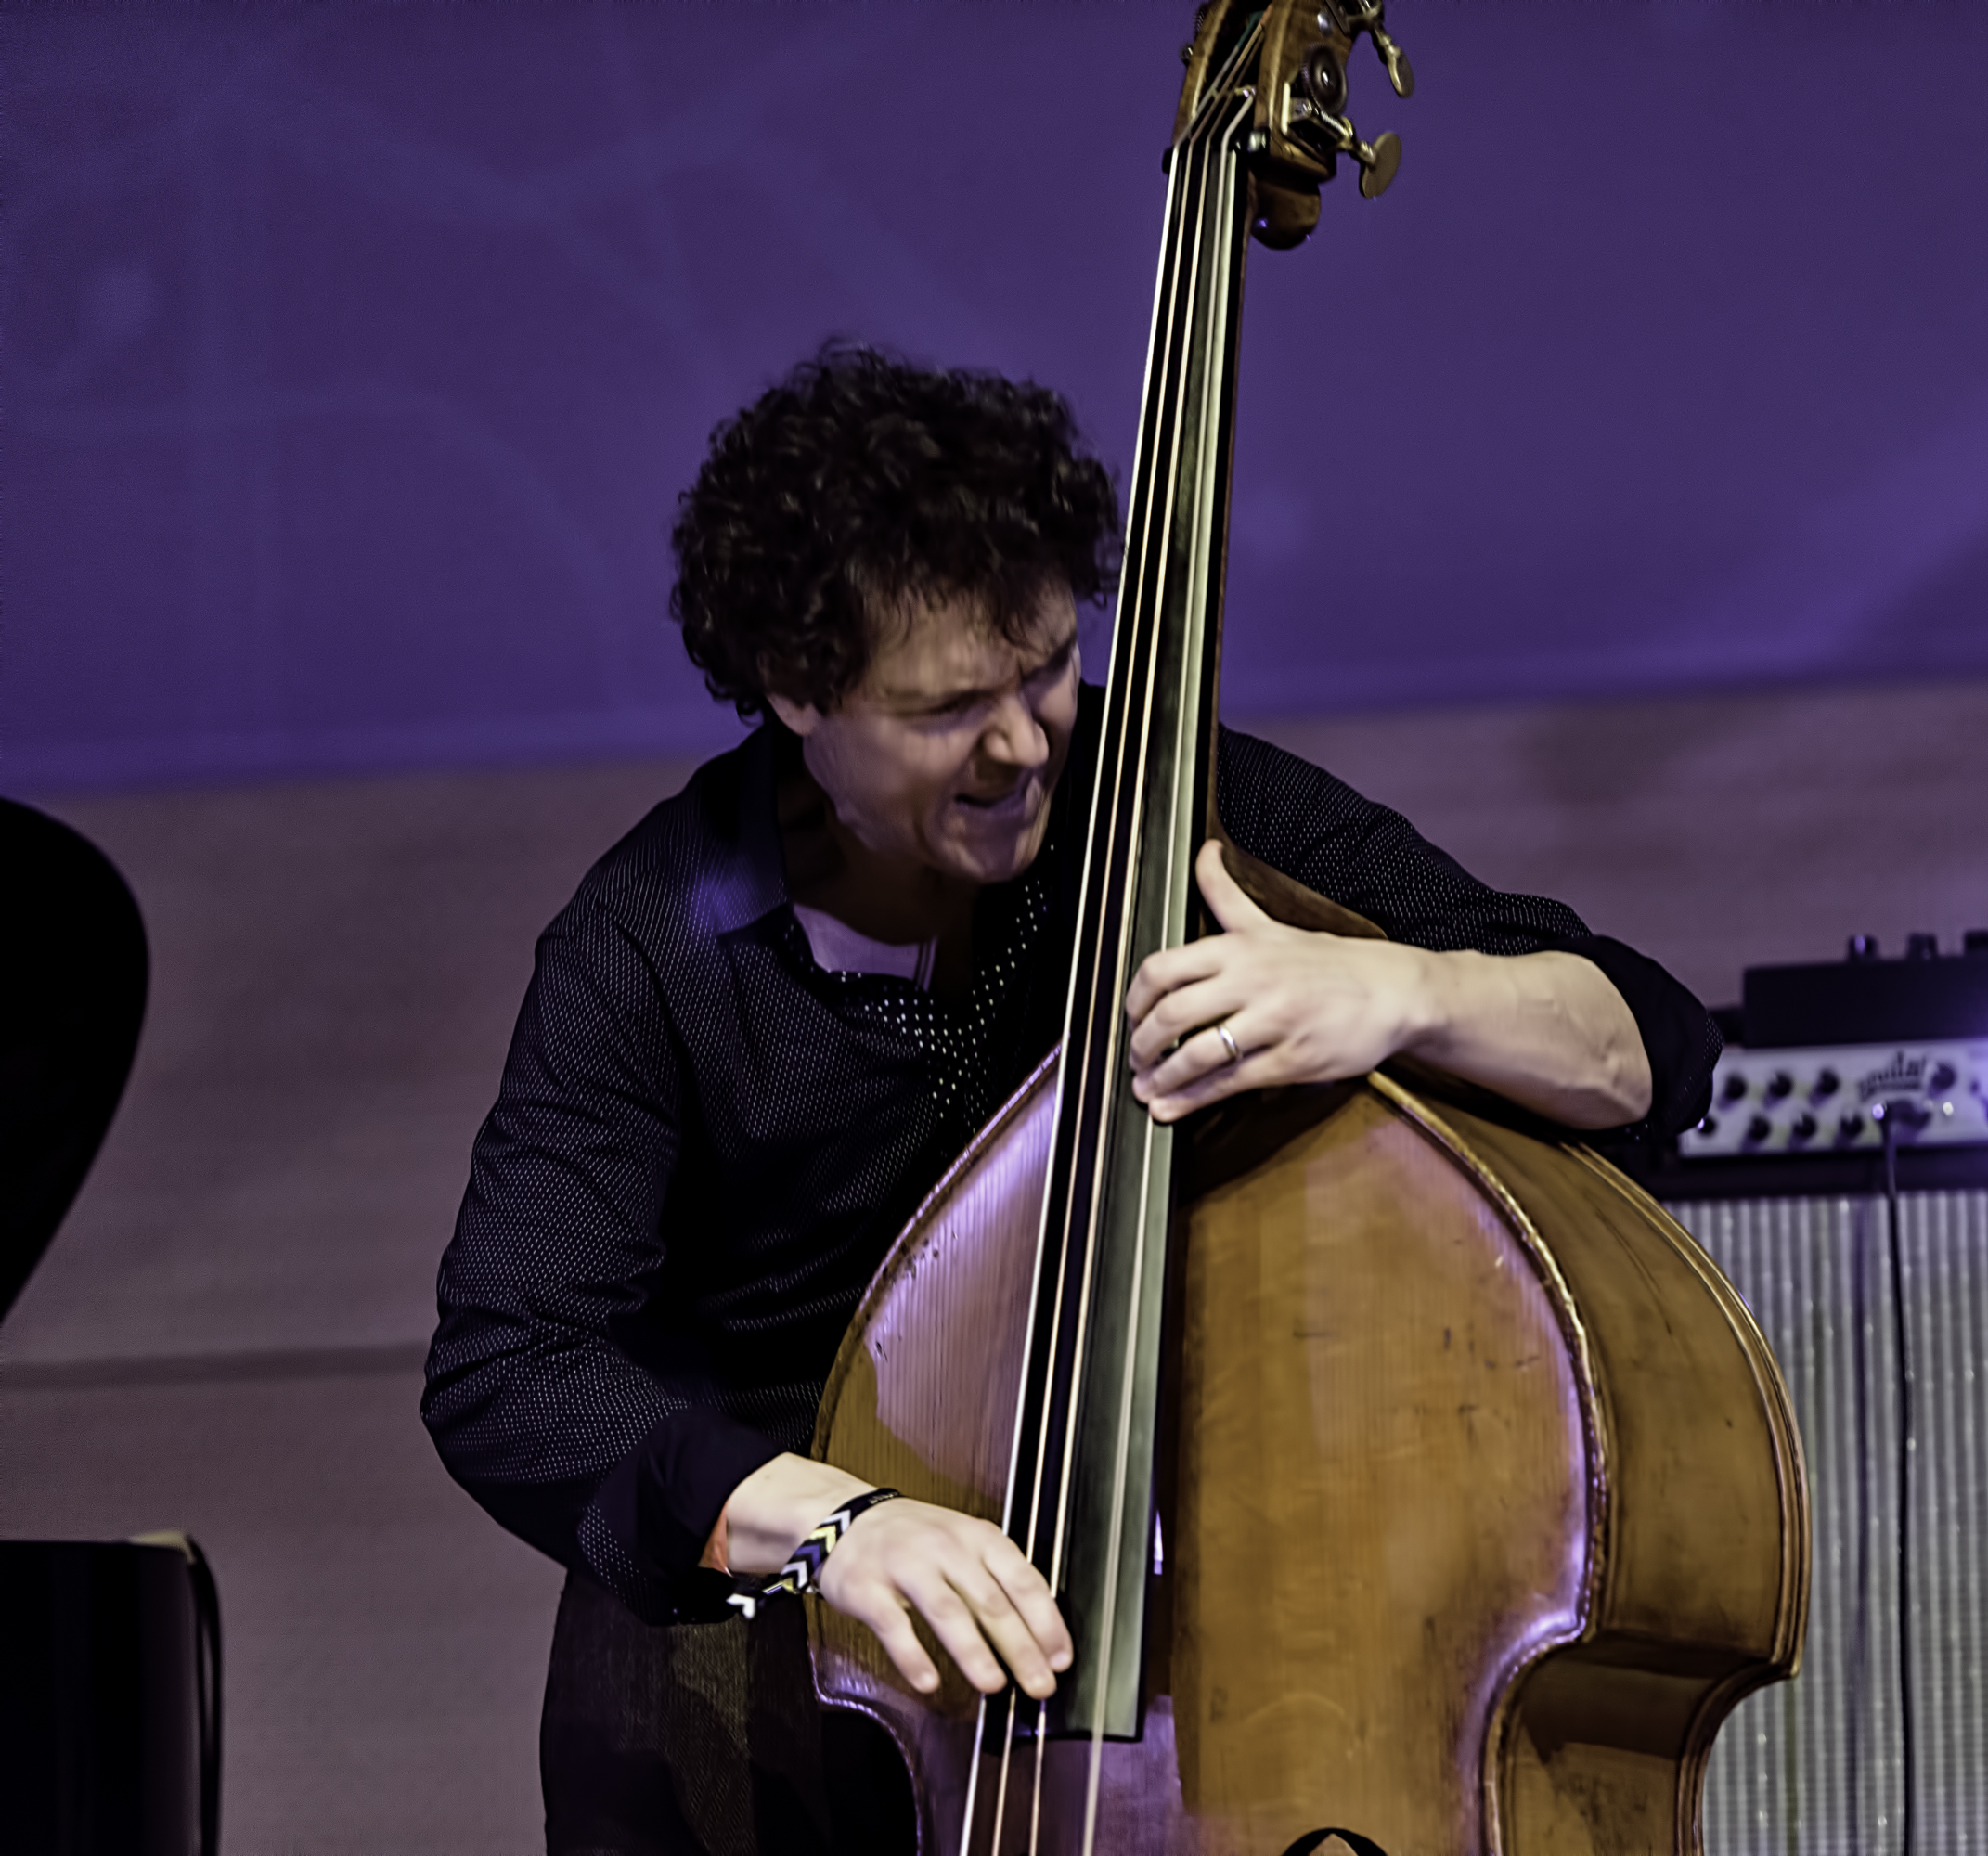 Stephan Crump with the Vijay Iyer Trio At The NYC Winter Jazzfest 2016